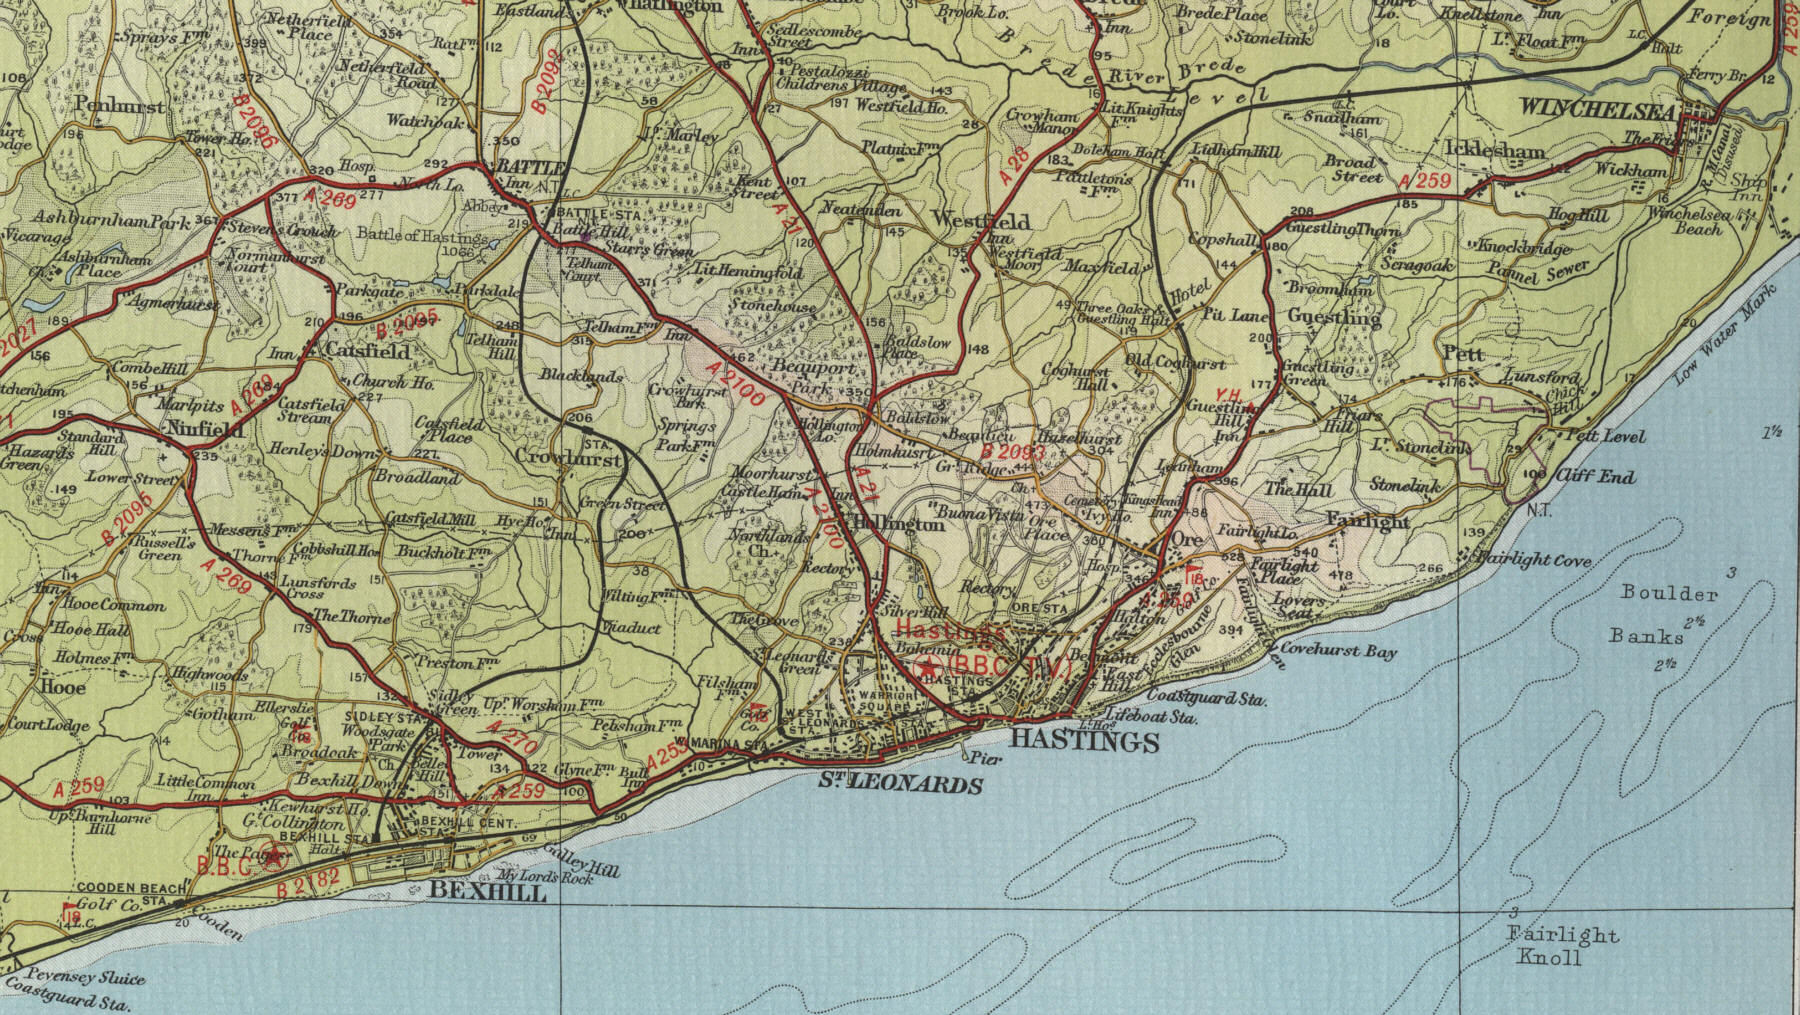 Map Of Hastings Hastings Map